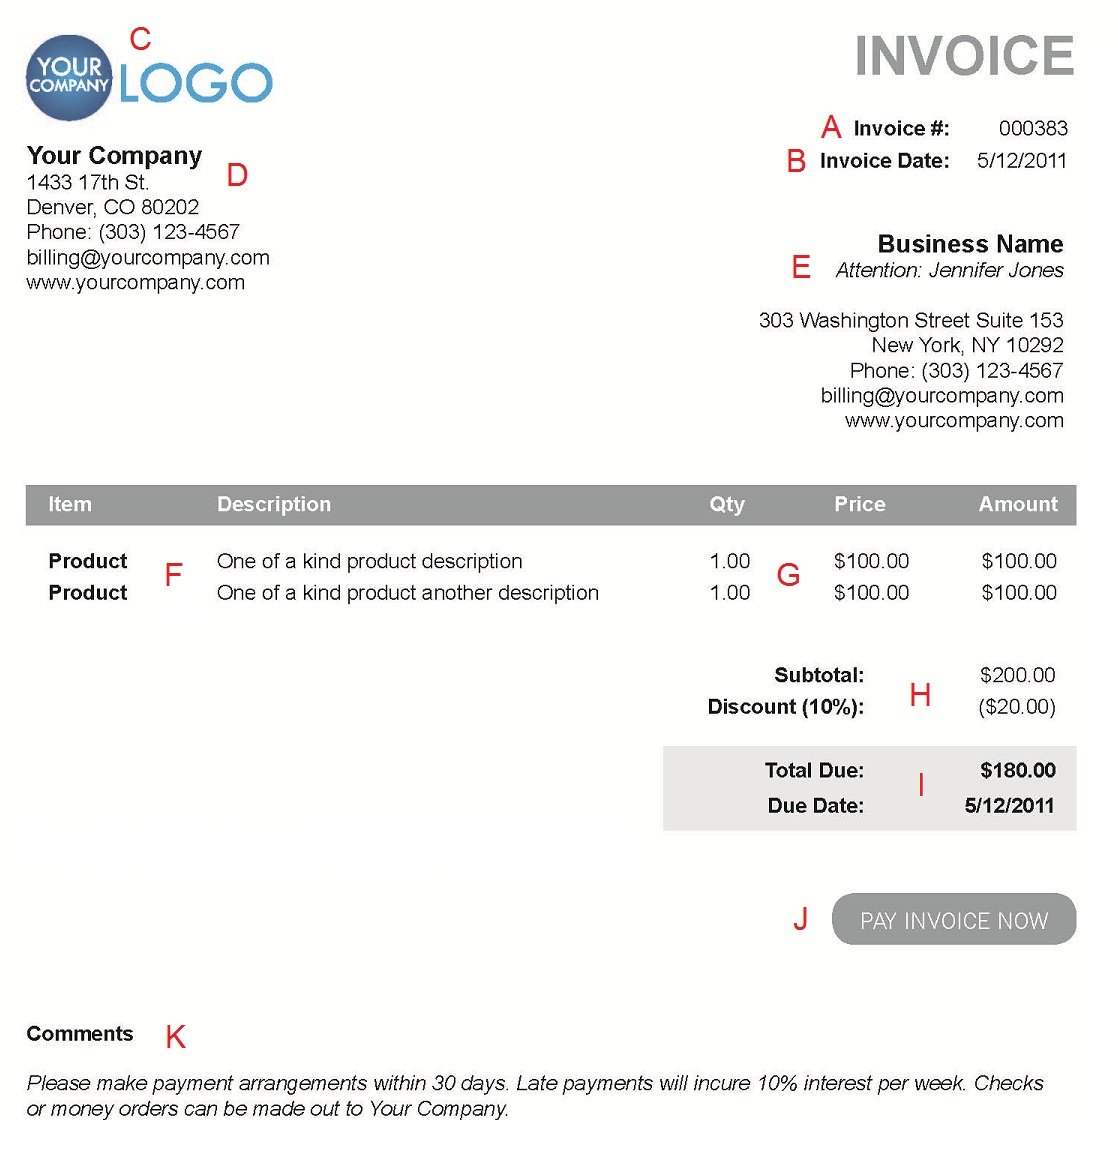 Opposenewapstandardsus  Prepossessing The  Different Sections Of An Electronic Payment Invoice With Outstanding A  With Enchanting Quiche Receipt Also Rent Receipt Template India In Addition Meat Loaf Receipts And Word Rent Receipt Template As Well As Michigan Gross Receipts Tax Additionally Office Receipt Template From Paysimplecom With Opposenewapstandardsus  Outstanding The  Different Sections Of An Electronic Payment Invoice With Enchanting A  And Prepossessing Quiche Receipt Also Rent Receipt Template India In Addition Meat Loaf Receipts From Paysimplecom